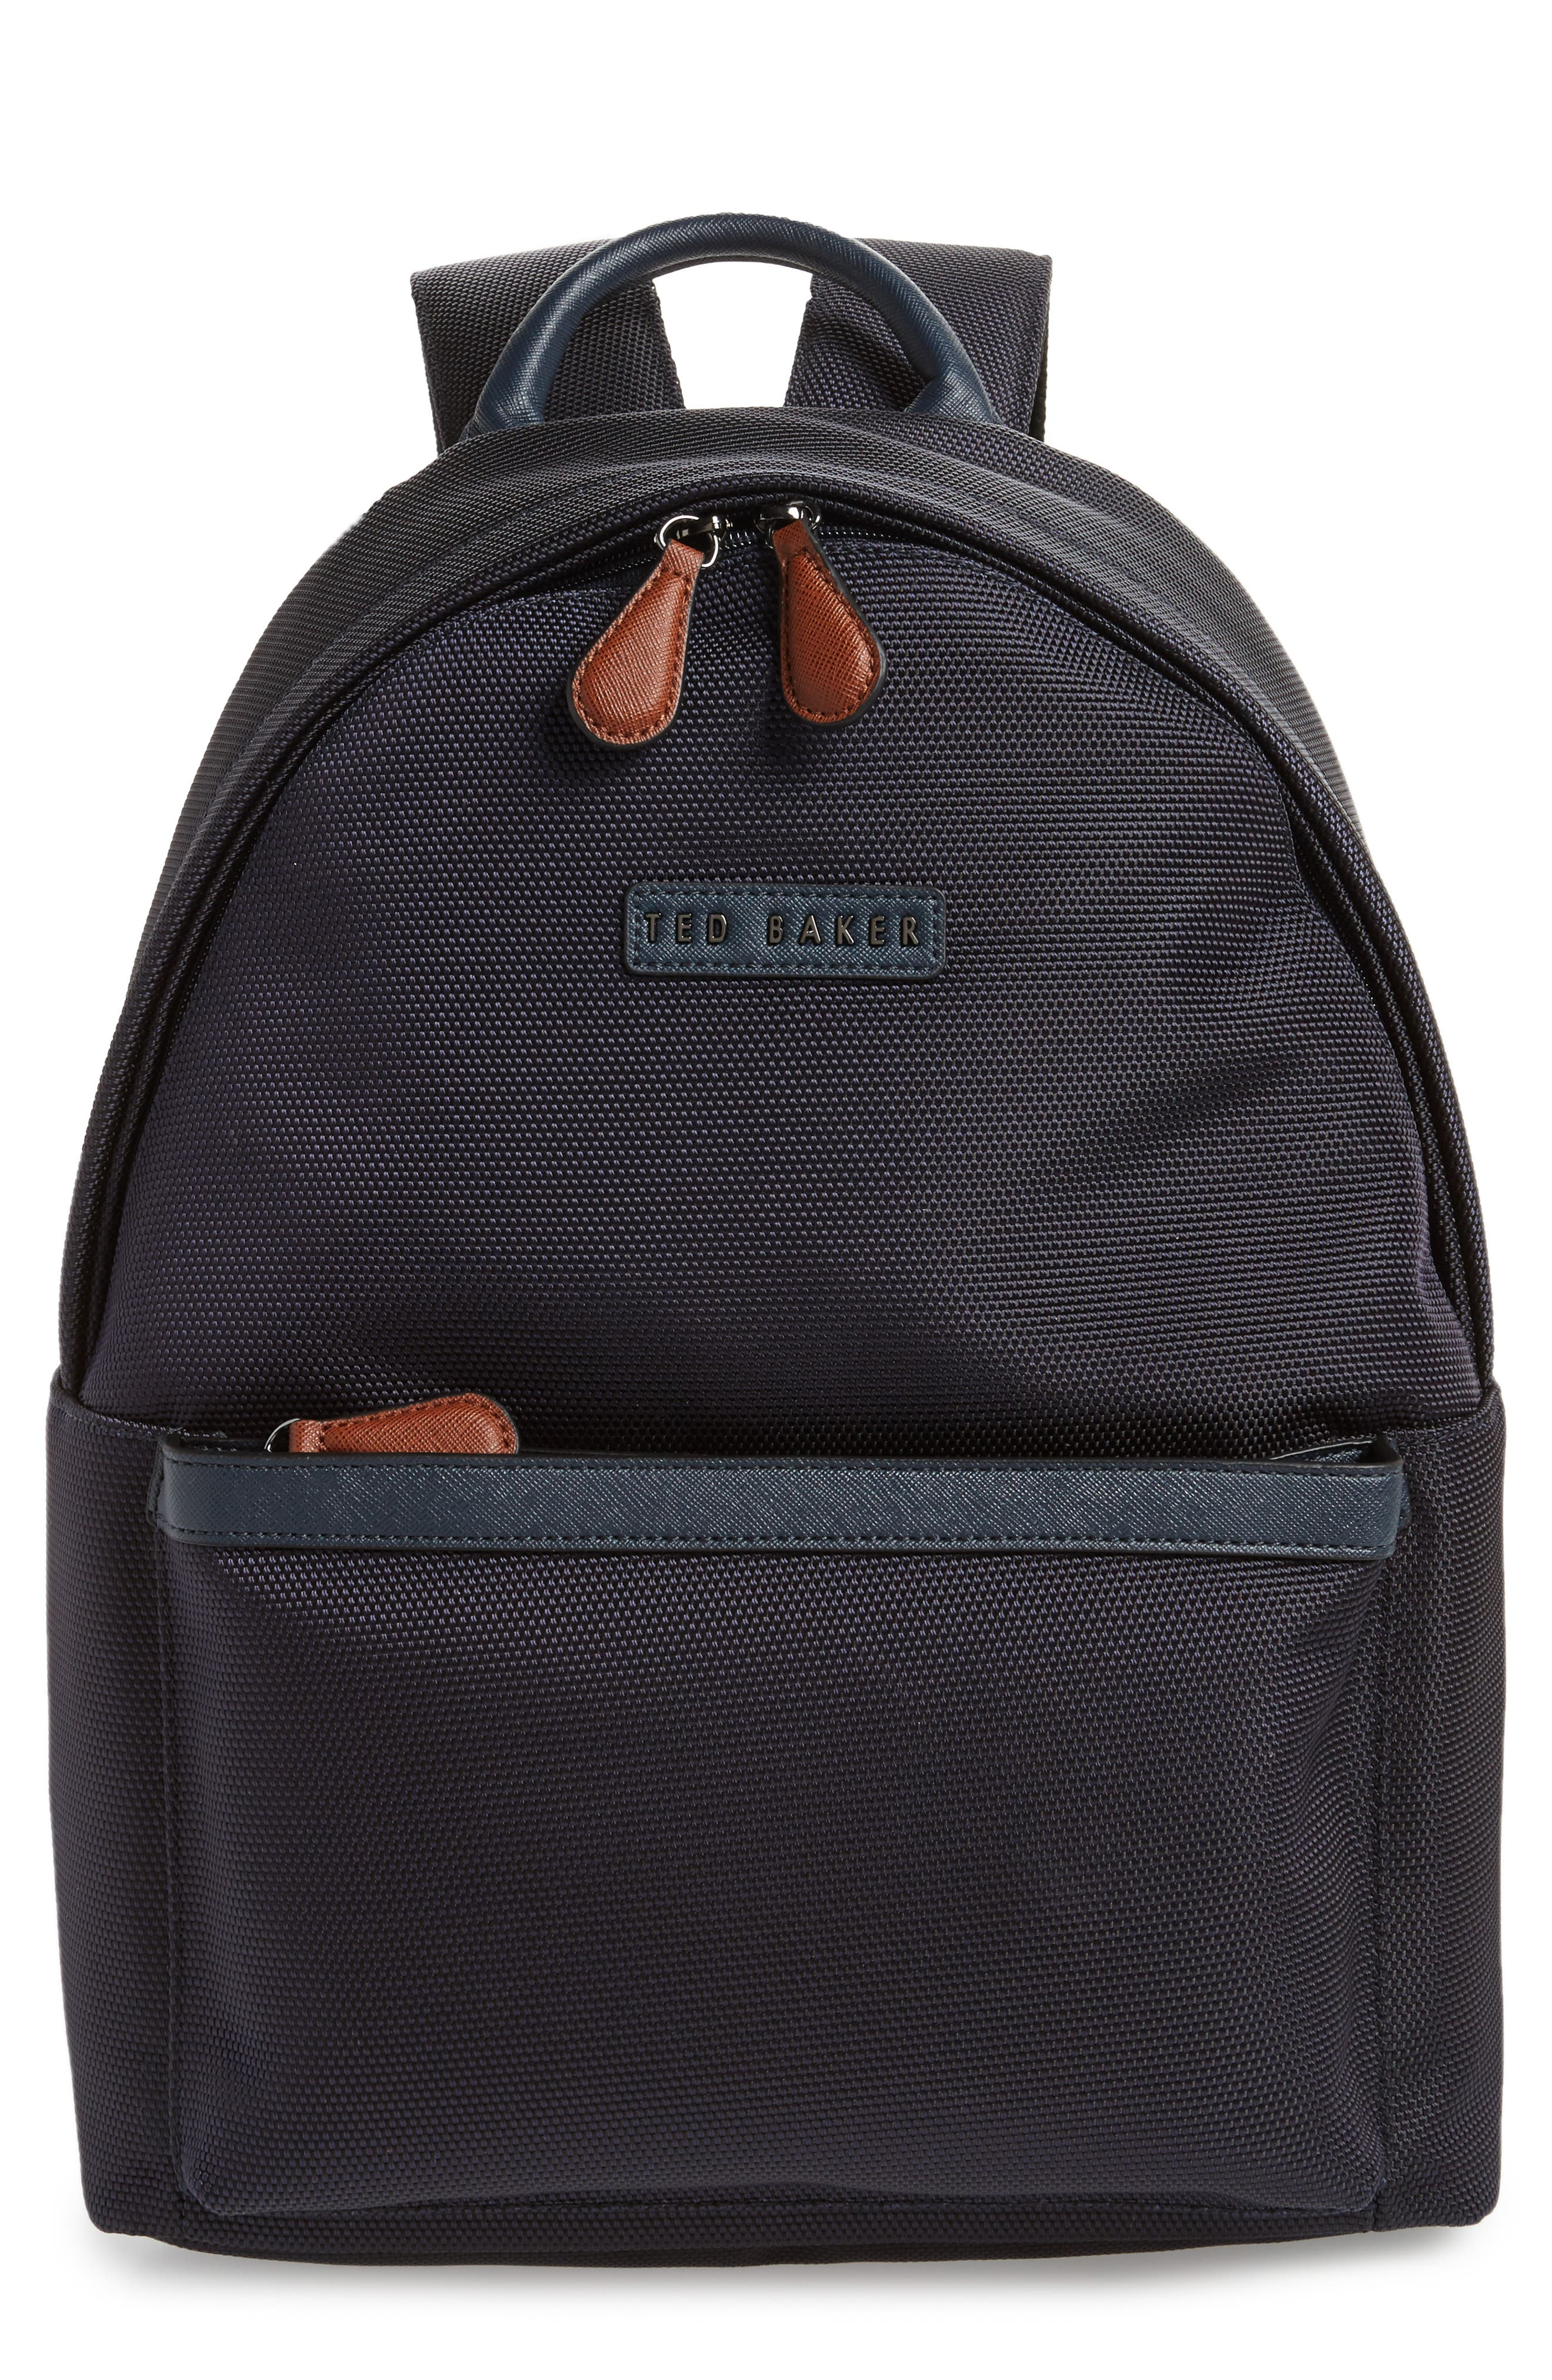 Brakes Backpack,                             Main thumbnail 1, color,                             Navy